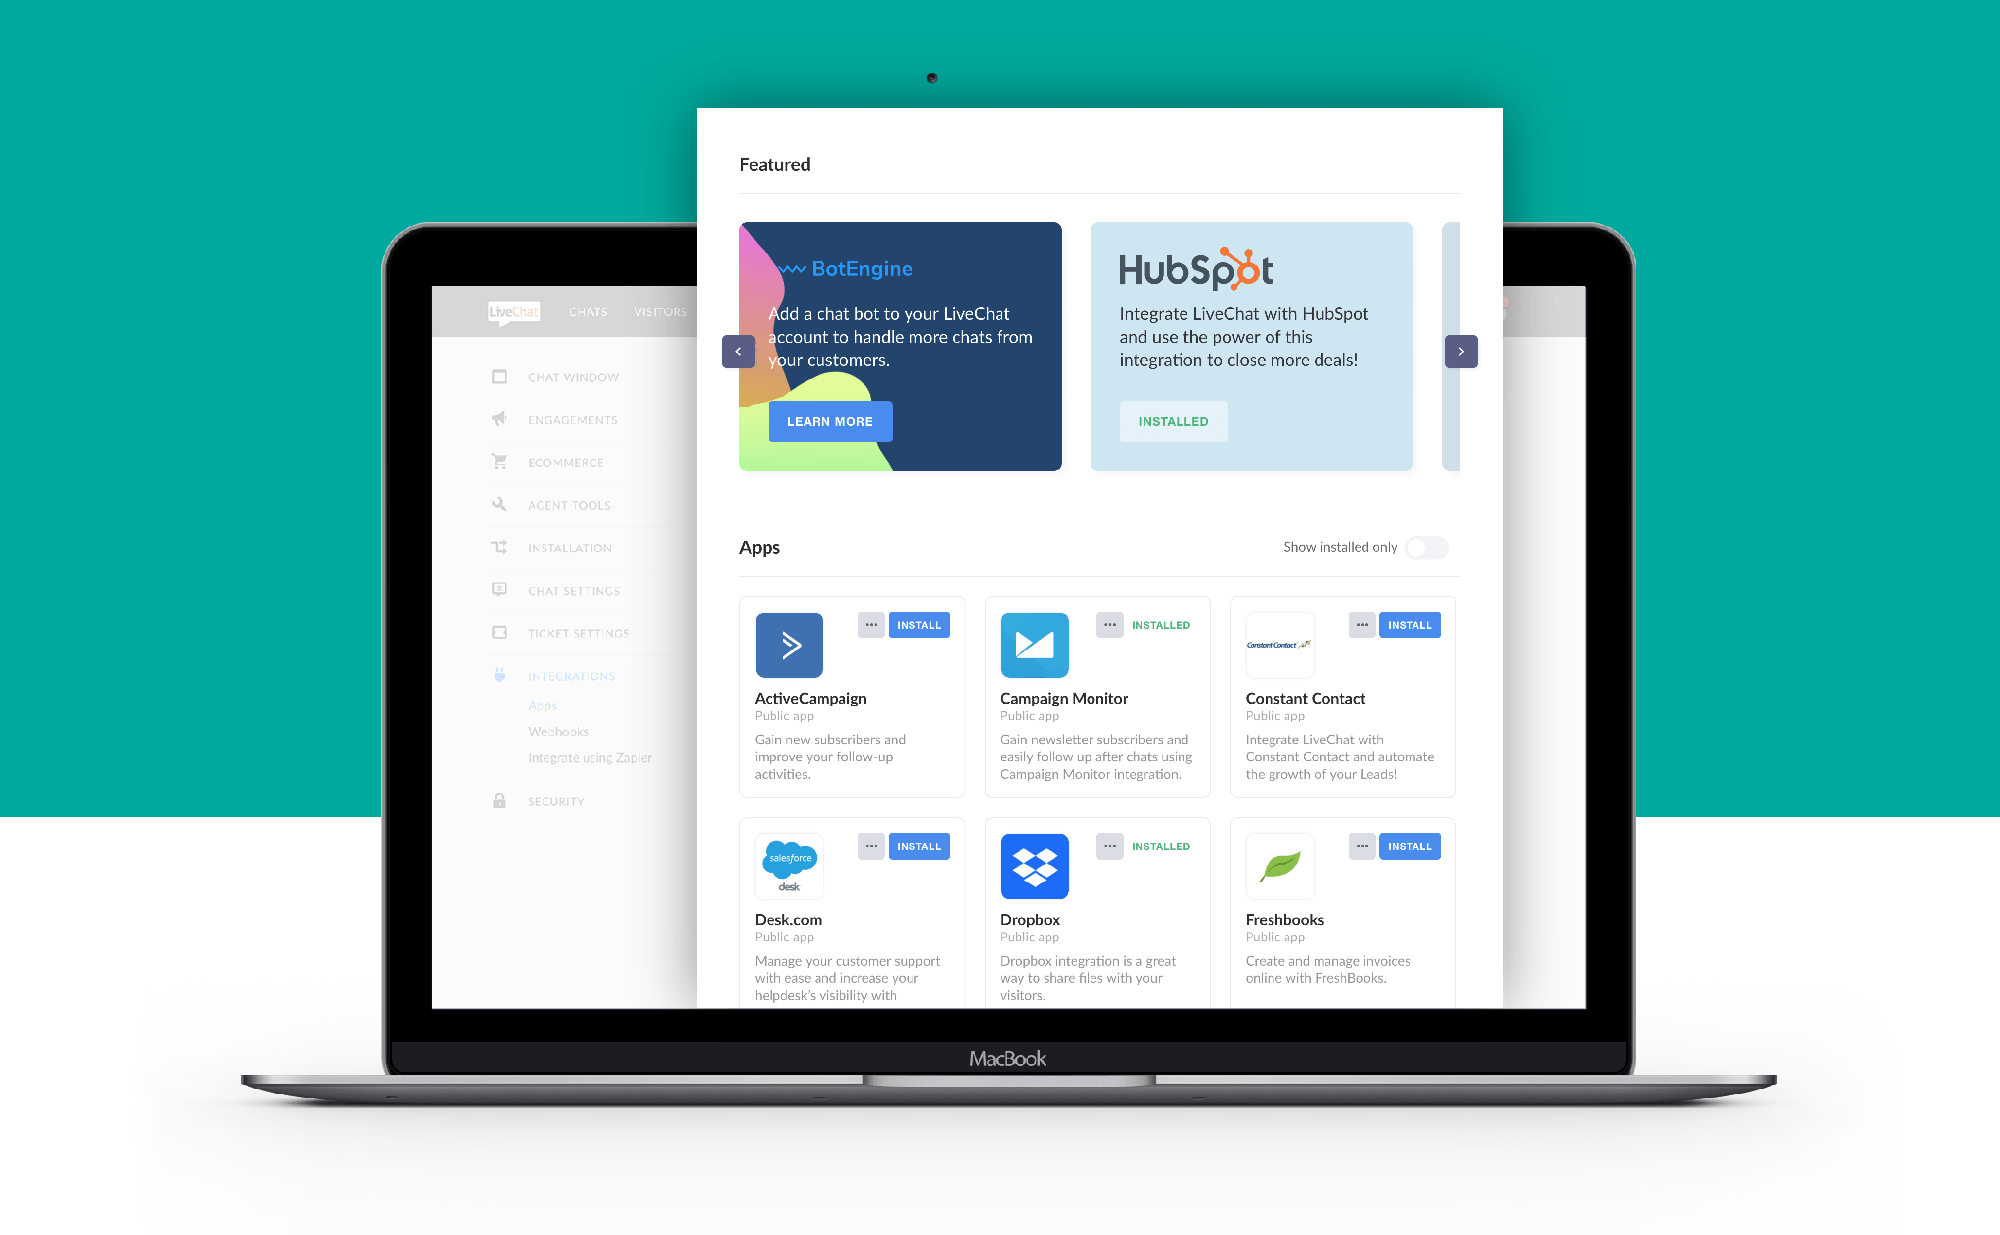 Explore New LiveChat Marketplace